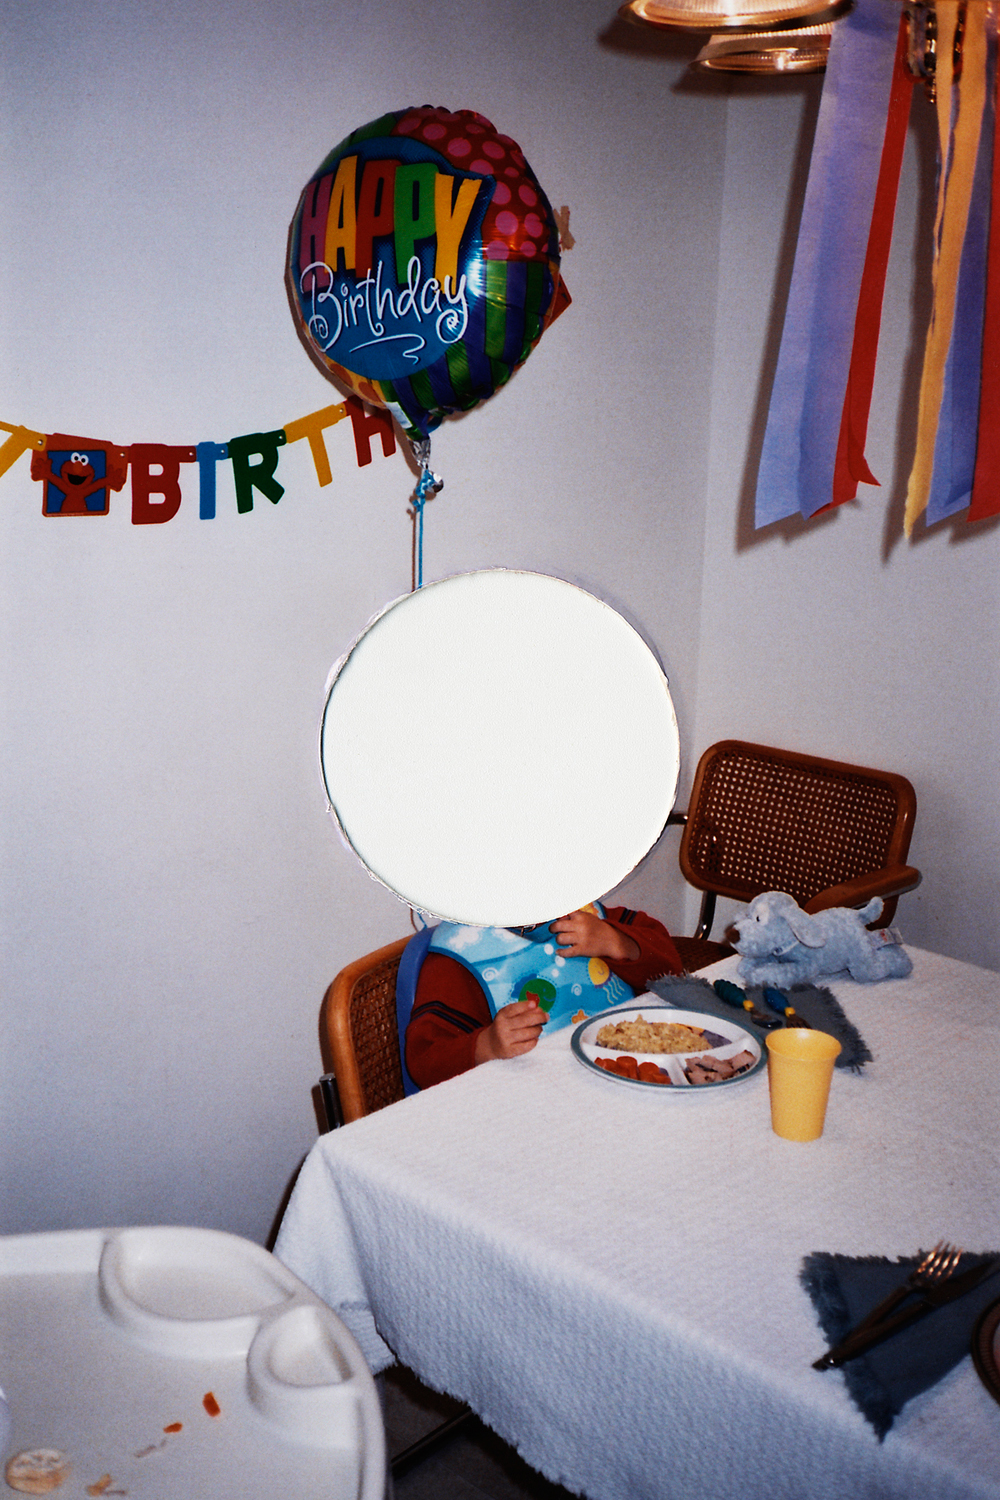 Untitled (Birthday), 2006